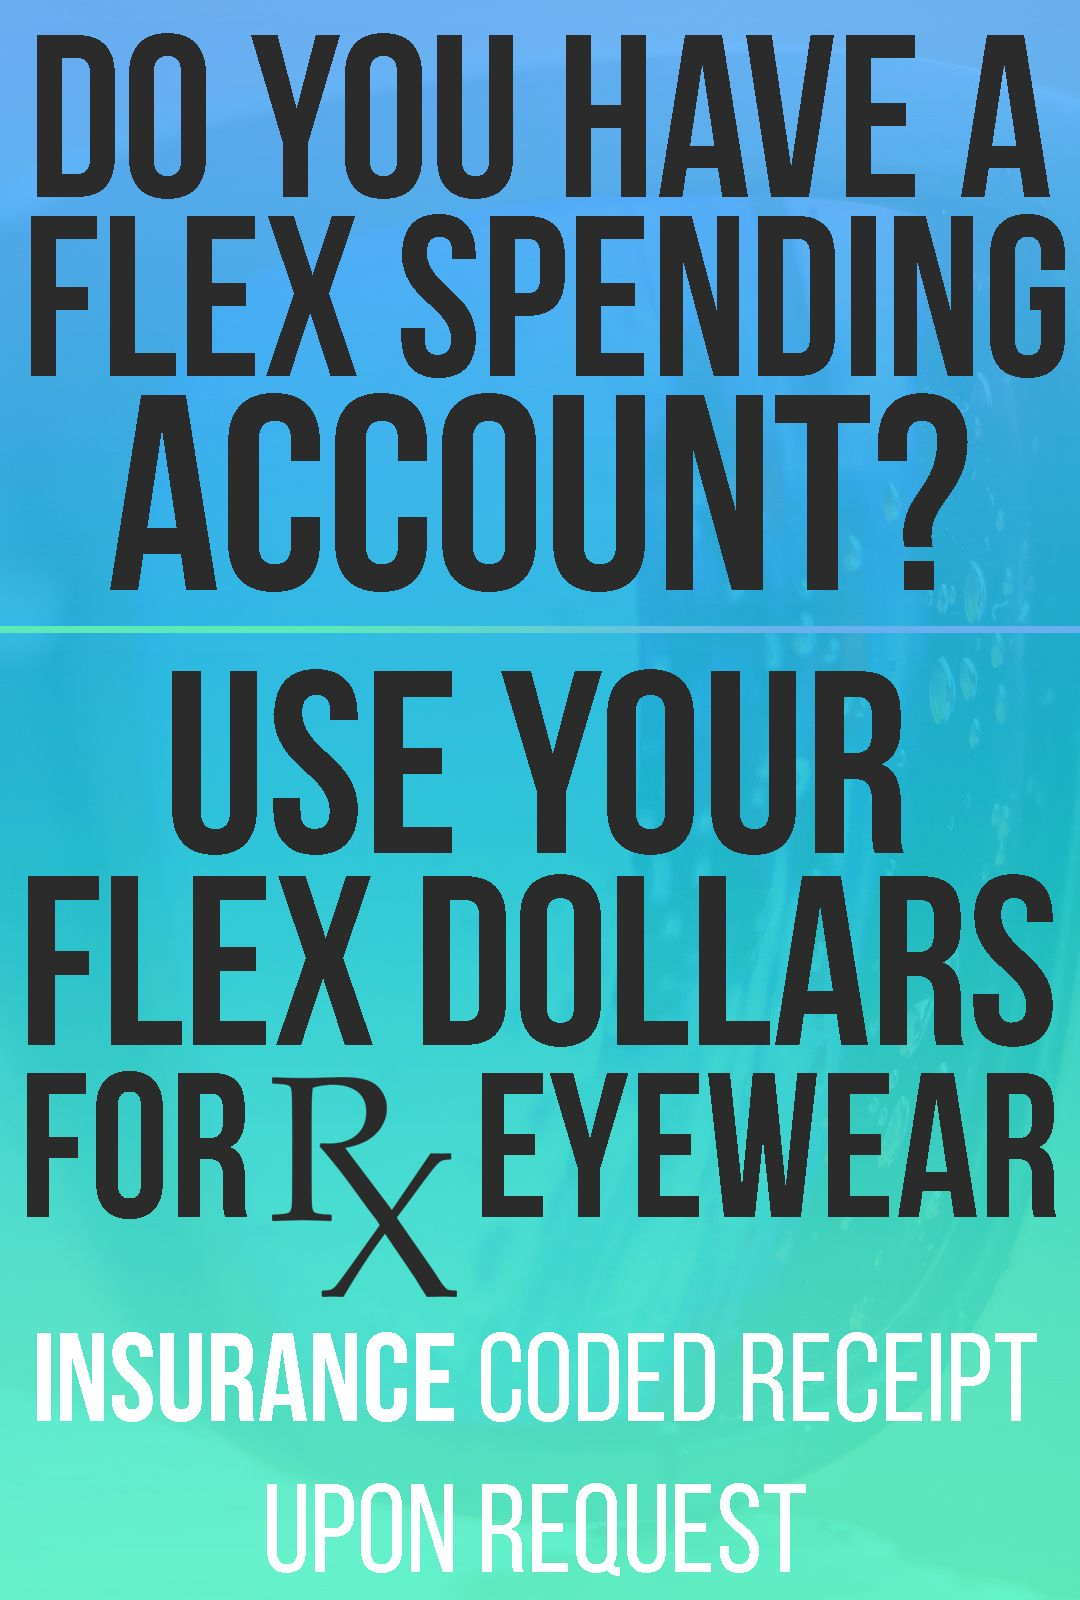 Use your flex spending account for prescription sunglasses or eye doctor near me visit